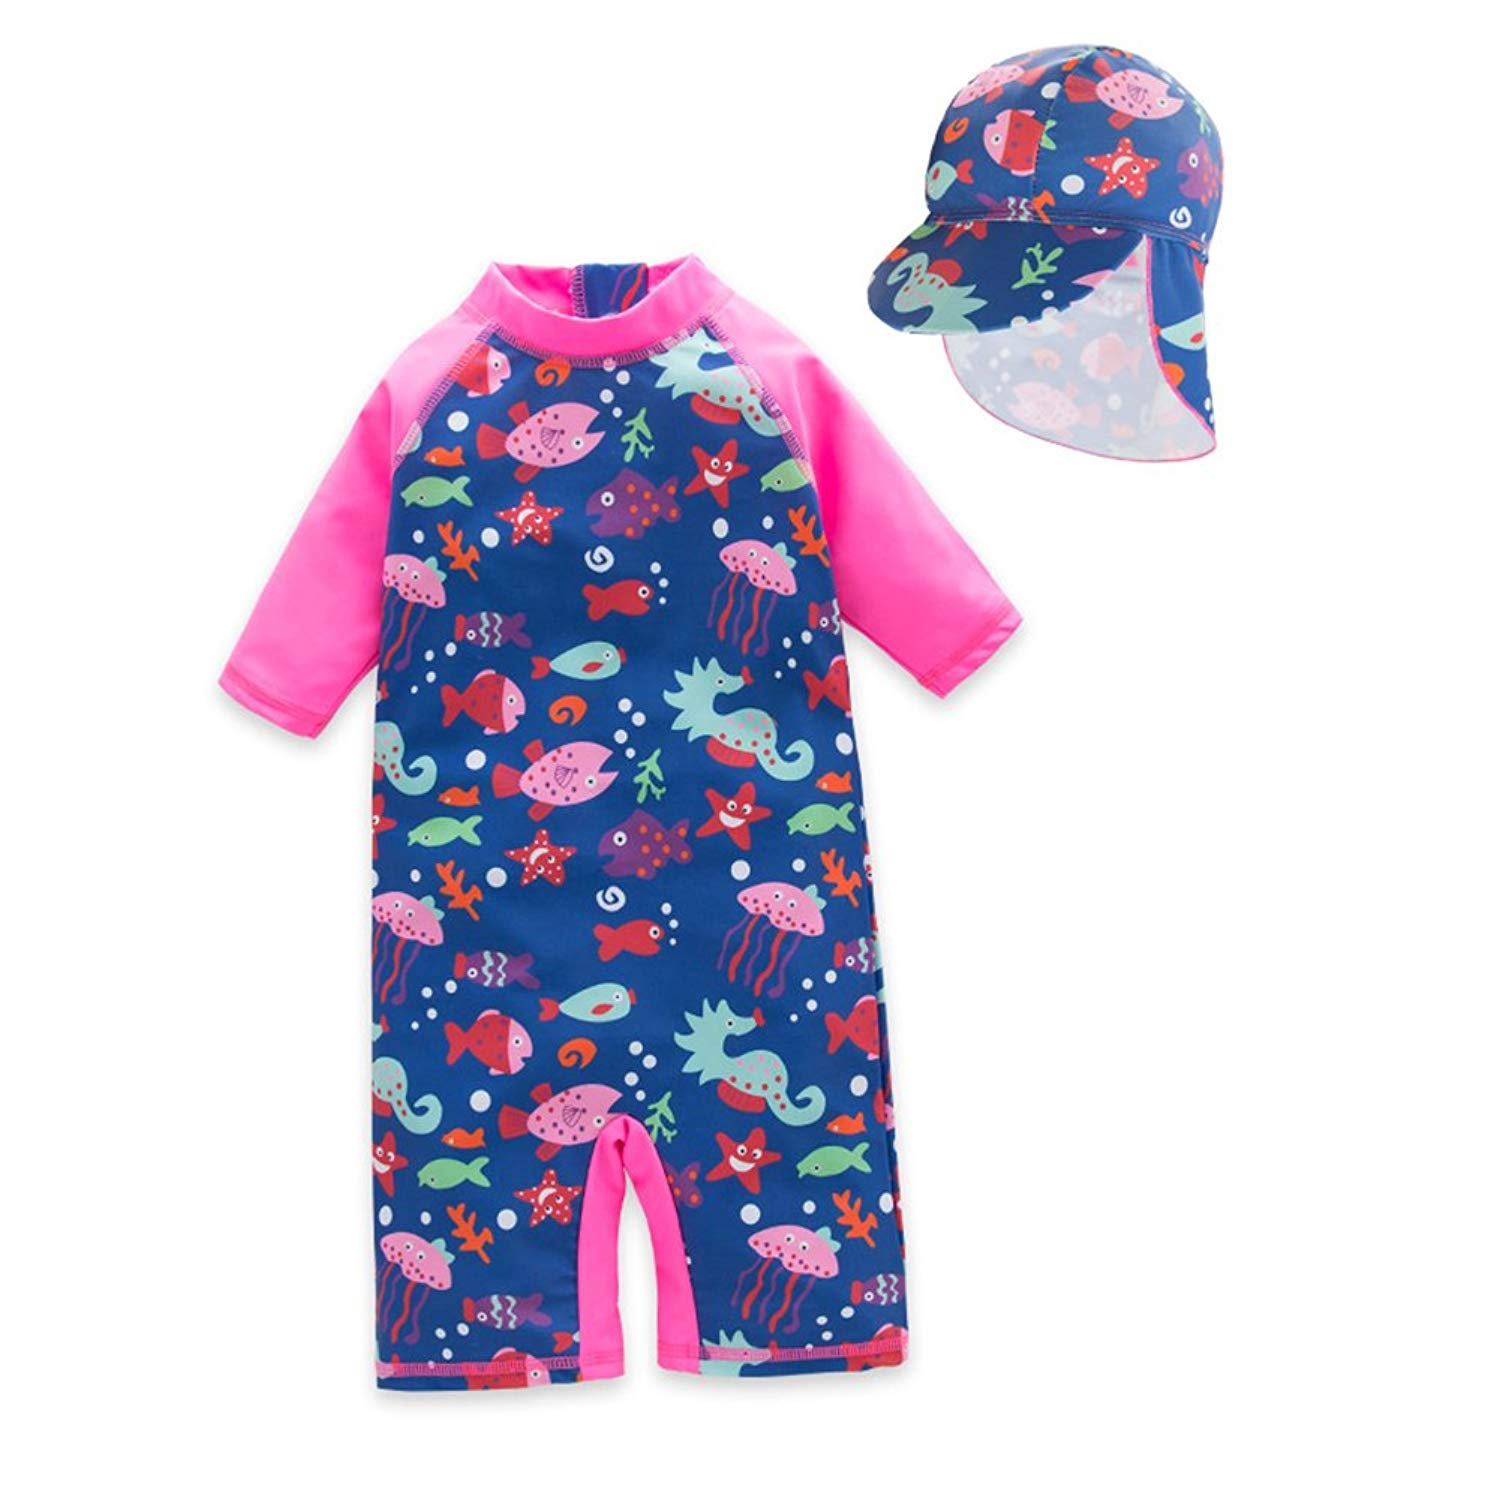 ea4cc9b2ea Get Quotations · TAIYCYXGAN Baby Little Girls One Piece Swimsuit Kids  Bathing Suit UV Sun Protective Surfing Suit UPF